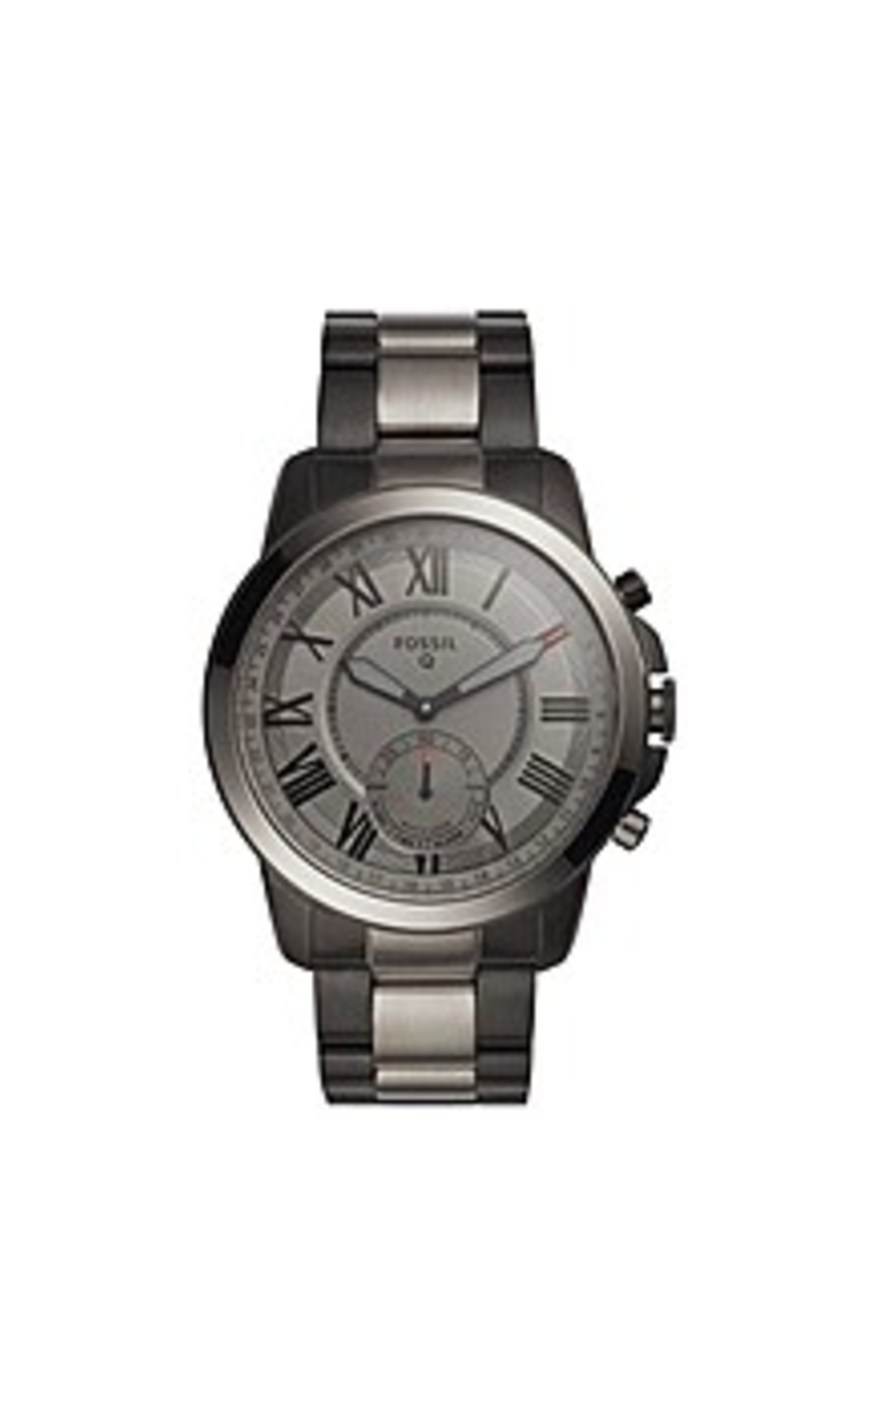 Fossil FTW1139 Q Grant Stainless Steel Hybrid Smartwatch - Black/Smoke